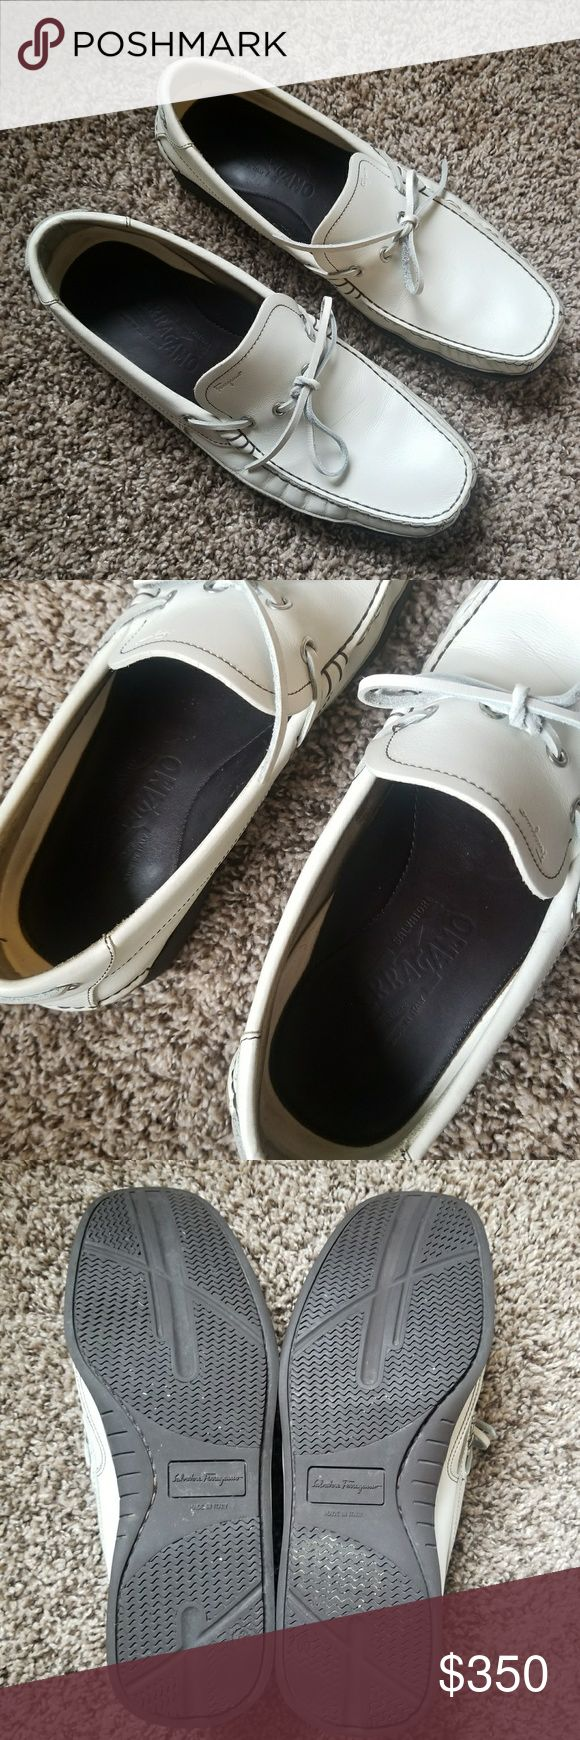 Salvatore Ferragamo Mens Off White Loafers/Shoes Salvatore Ferragamo Mens White Loafers/Shoes. More like Ann off white in color. Worn only once to an event. Size 10 Men's shoe. This is perfect for golfing, sailing, beach, working, on a date.  Perfect mens casual yet preppy and sexy. Excellent condition. Salvatore Ferragamo Shoes Loafers & Slip-Ons